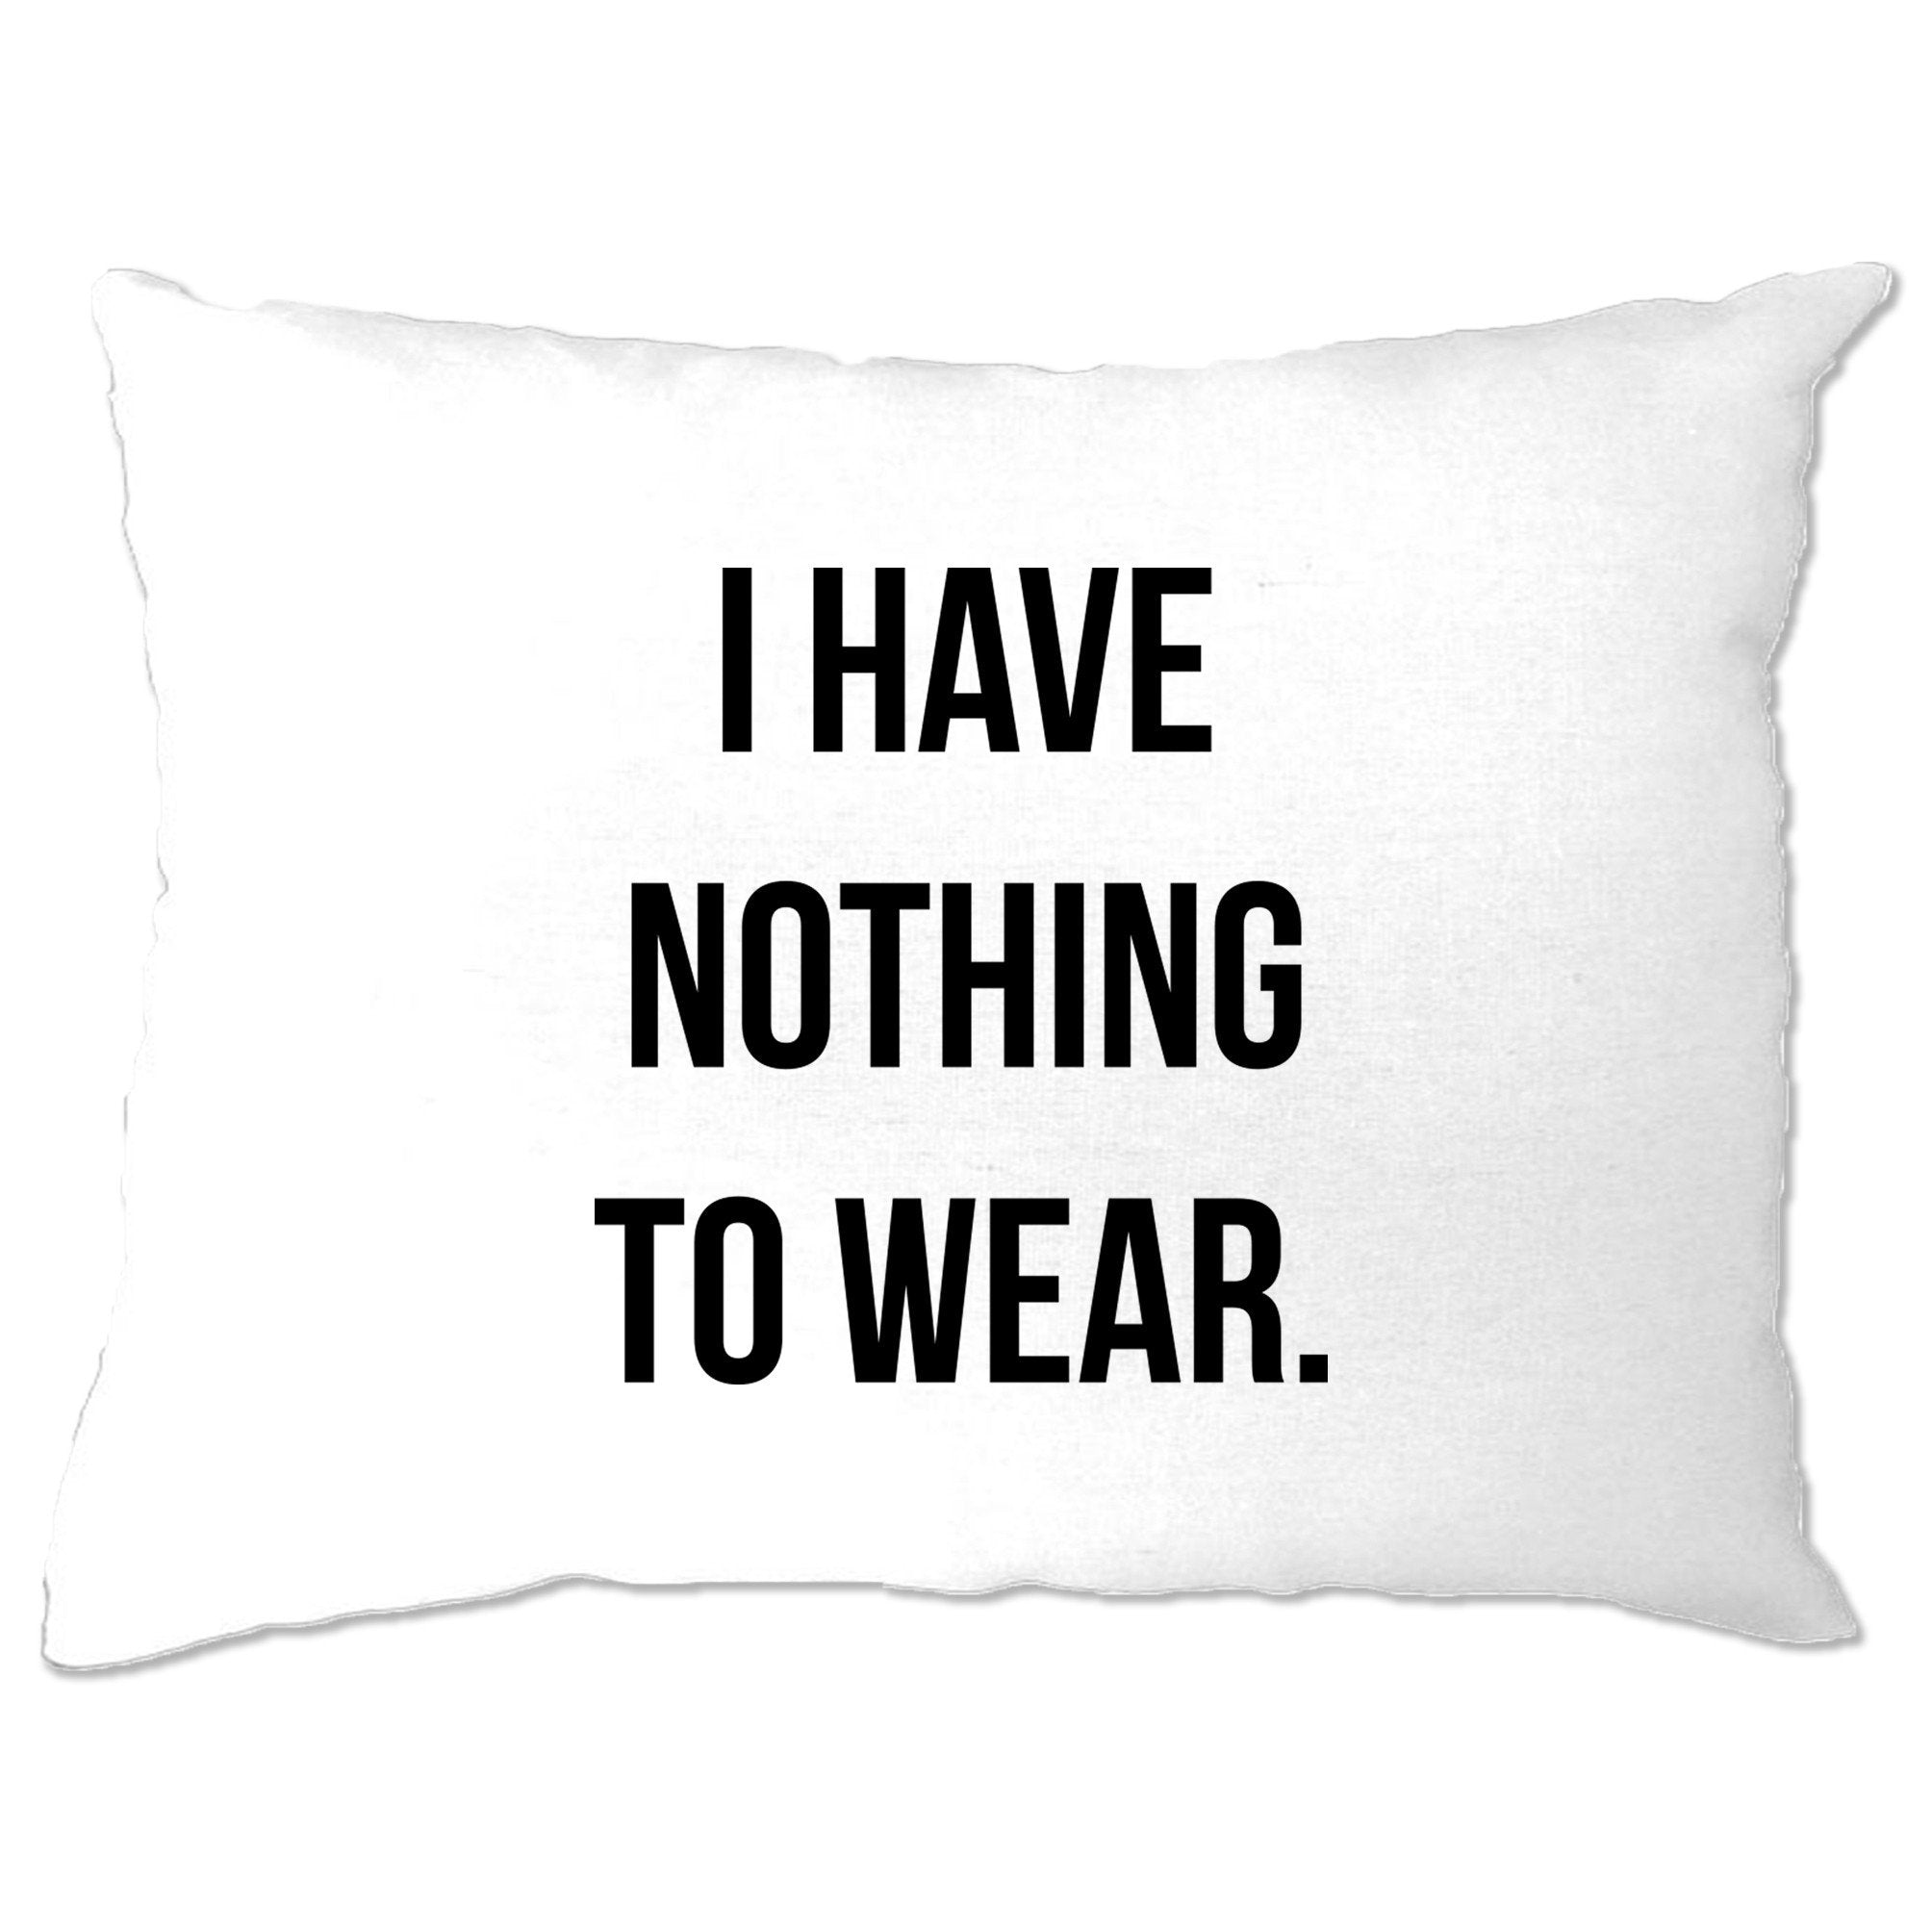 Novelty Slogan Pillow Case I Have Nothing To Wear.